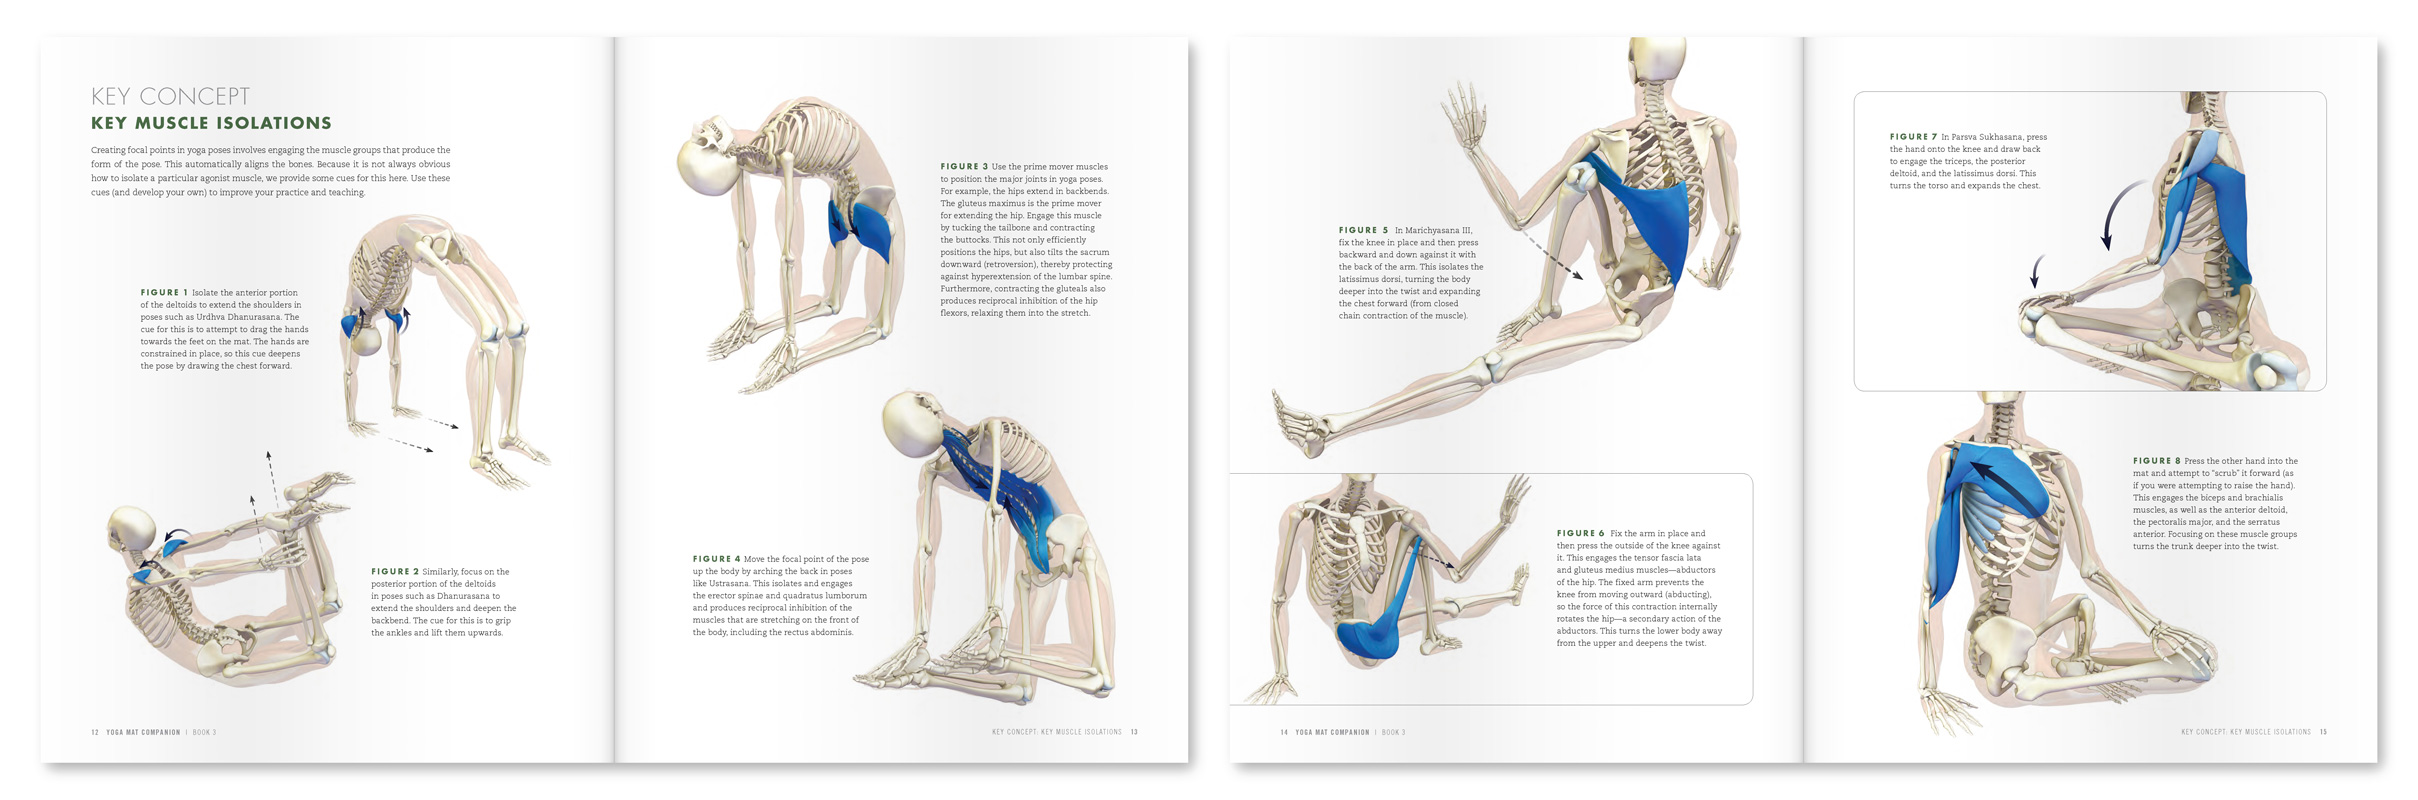 The Daily Bandha: Your Glutes and Lats in Bird Dog Pose